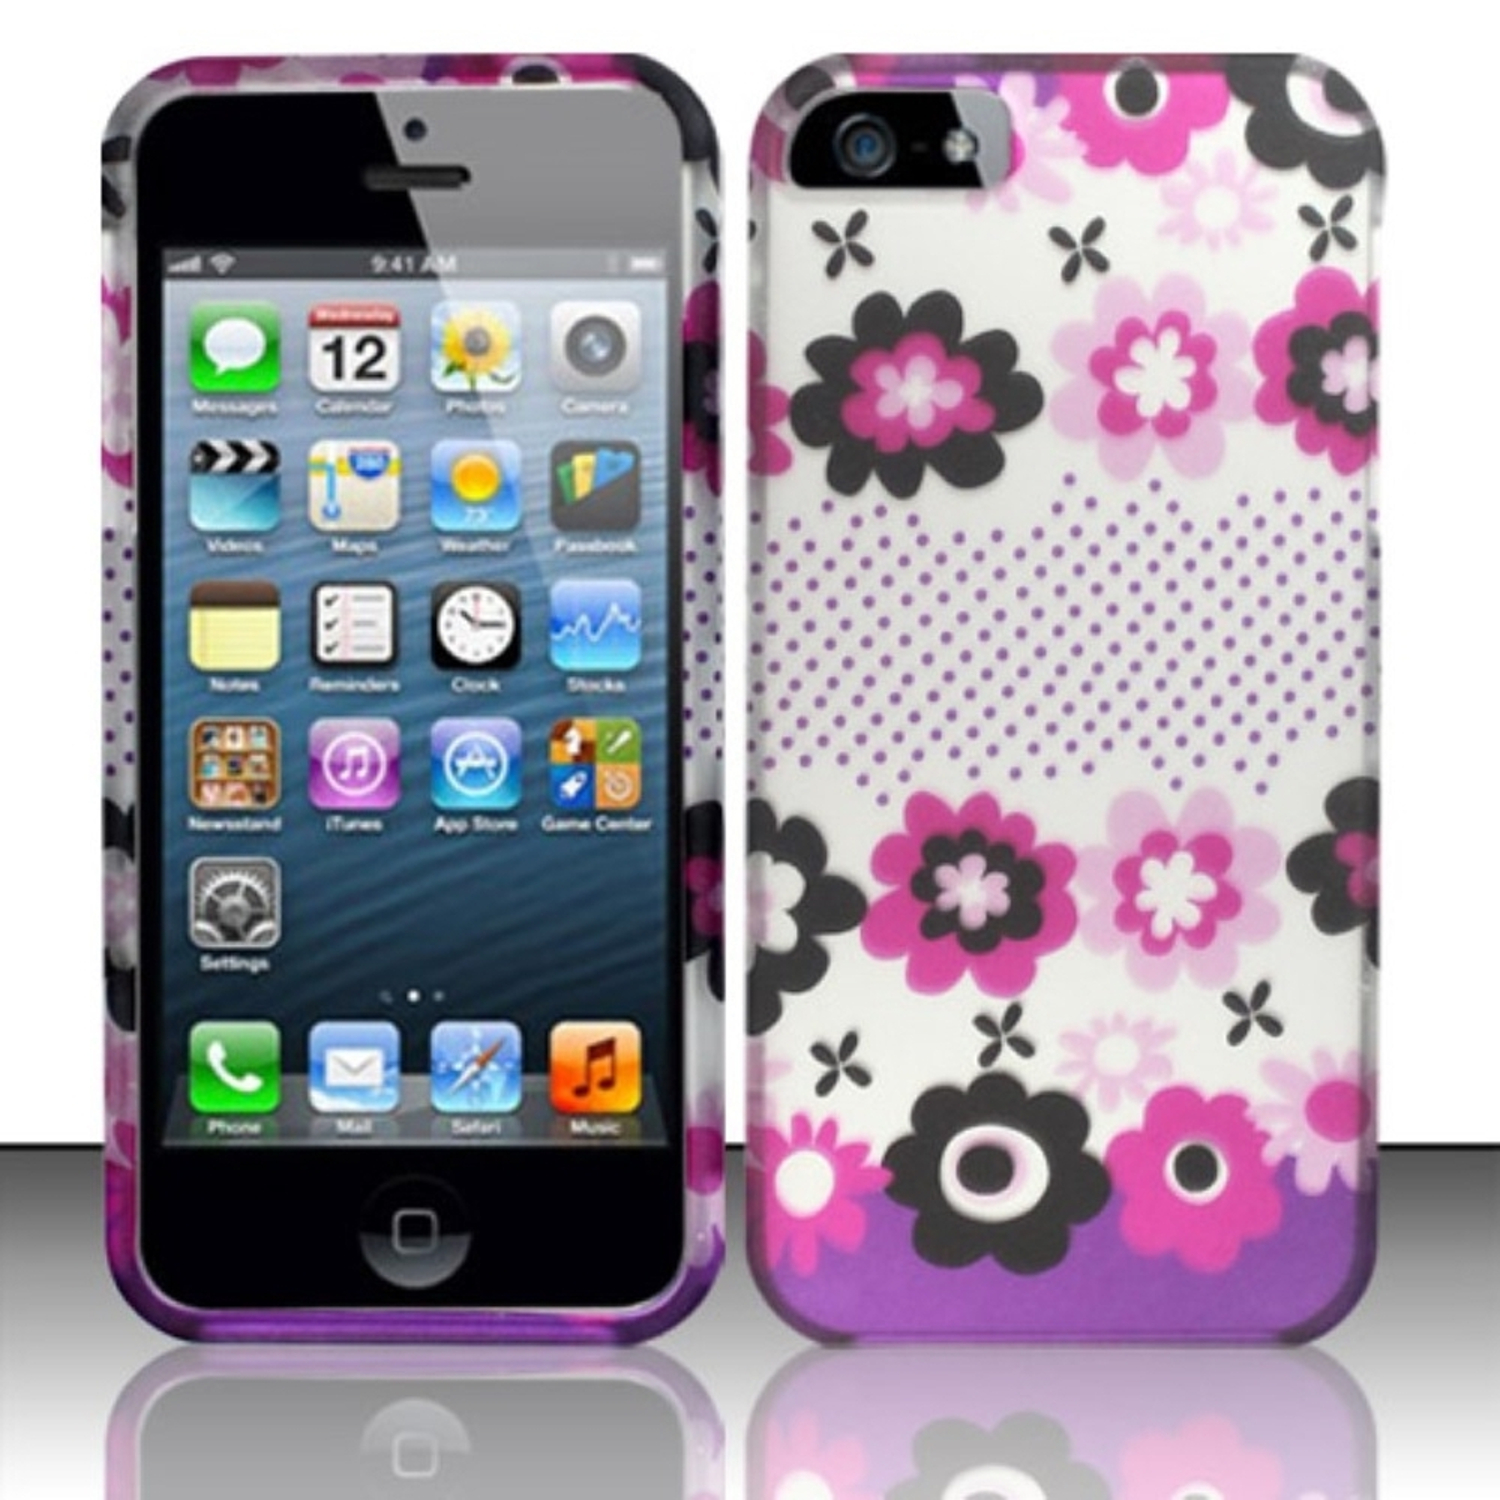 Insten For iPhone SE / 5S / 5 Rubberized Design Case - Pink Blossom Flowers